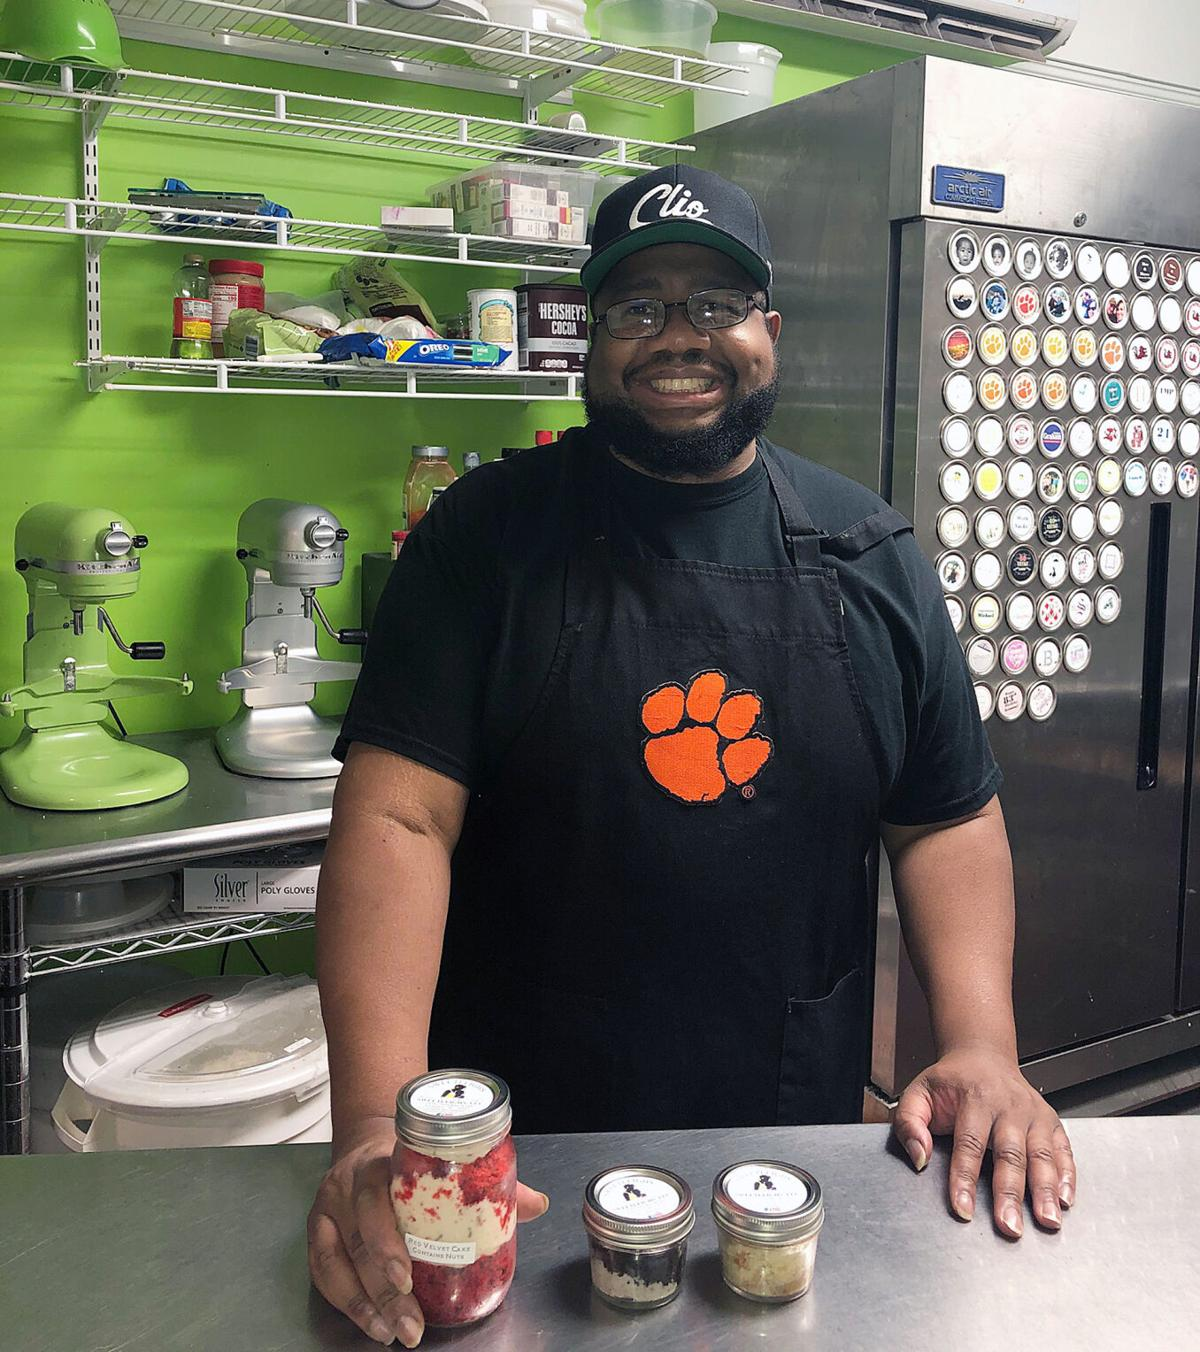 SweetLeighs Cakes earns $10,000 for community support during COVID